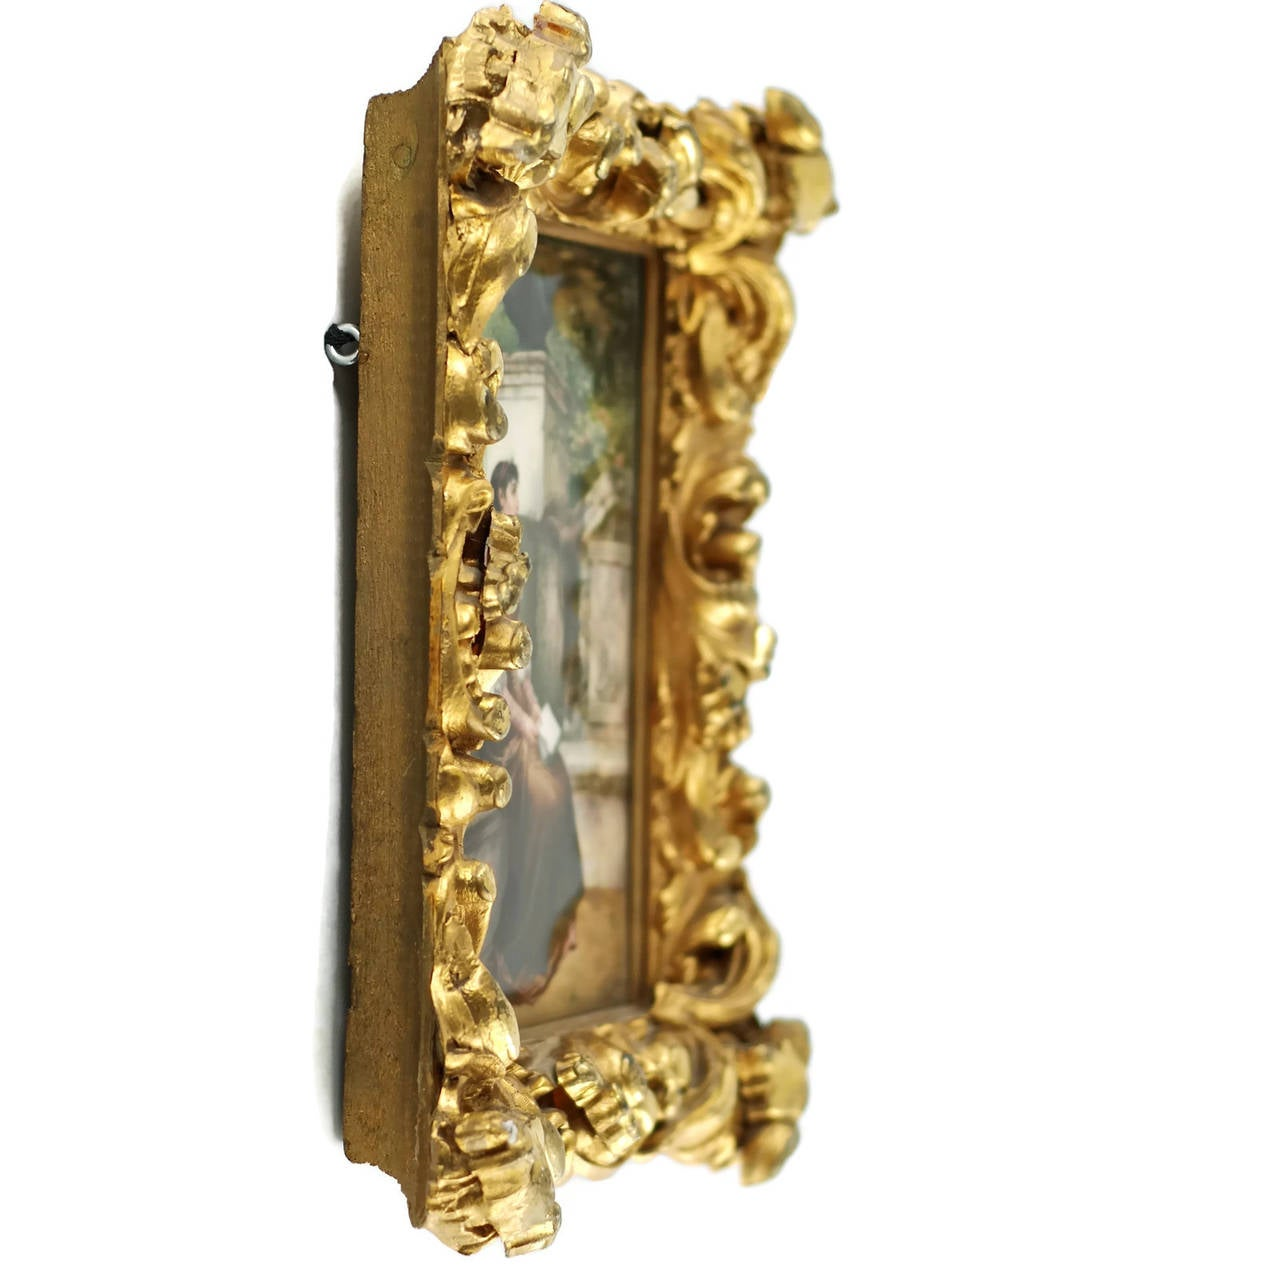 1870s 19th Century KPM Plaque Signed by Wagner in Giltwood Frame, 'Erinnerungen' For Sale